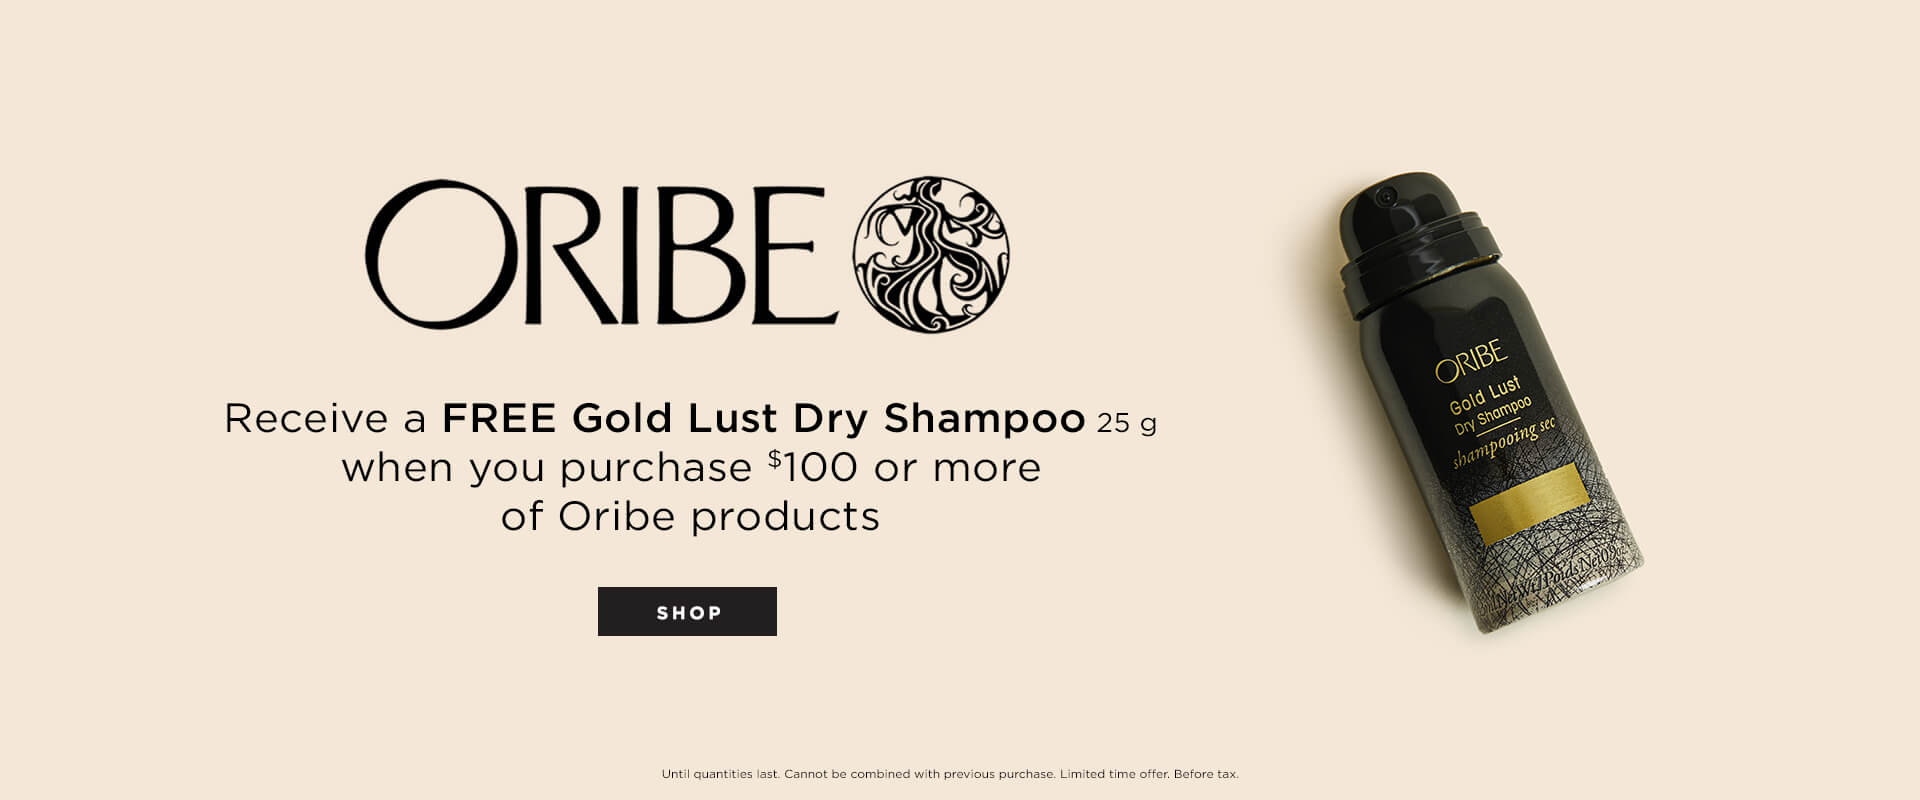 Receive a FREE Gold Lust Dry Shampoo 25g when you purchase $100 or more of Oribe products.